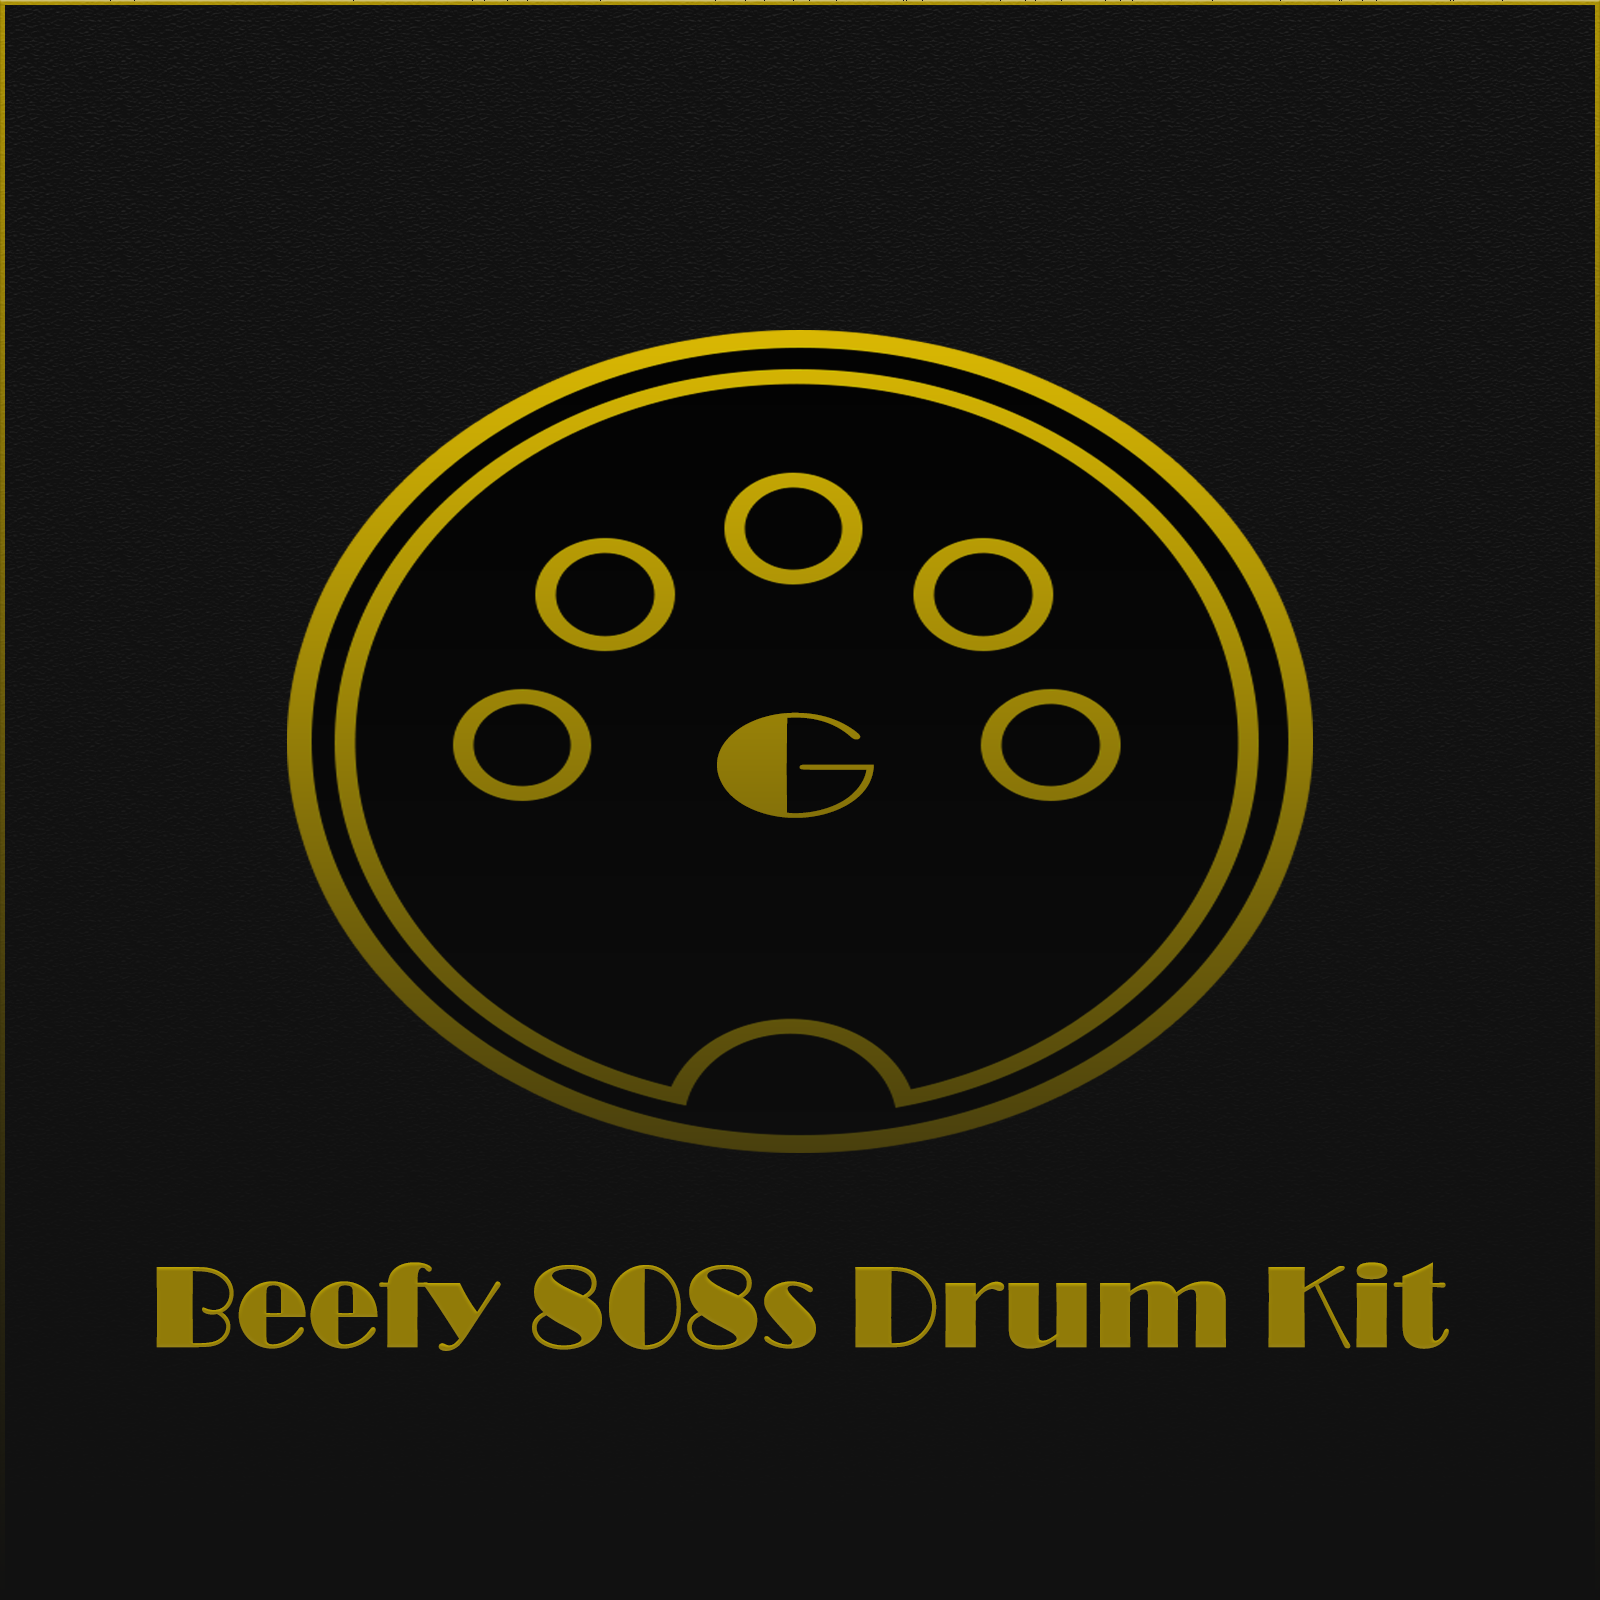 Beefy 808s Drum Kit Artwork.png